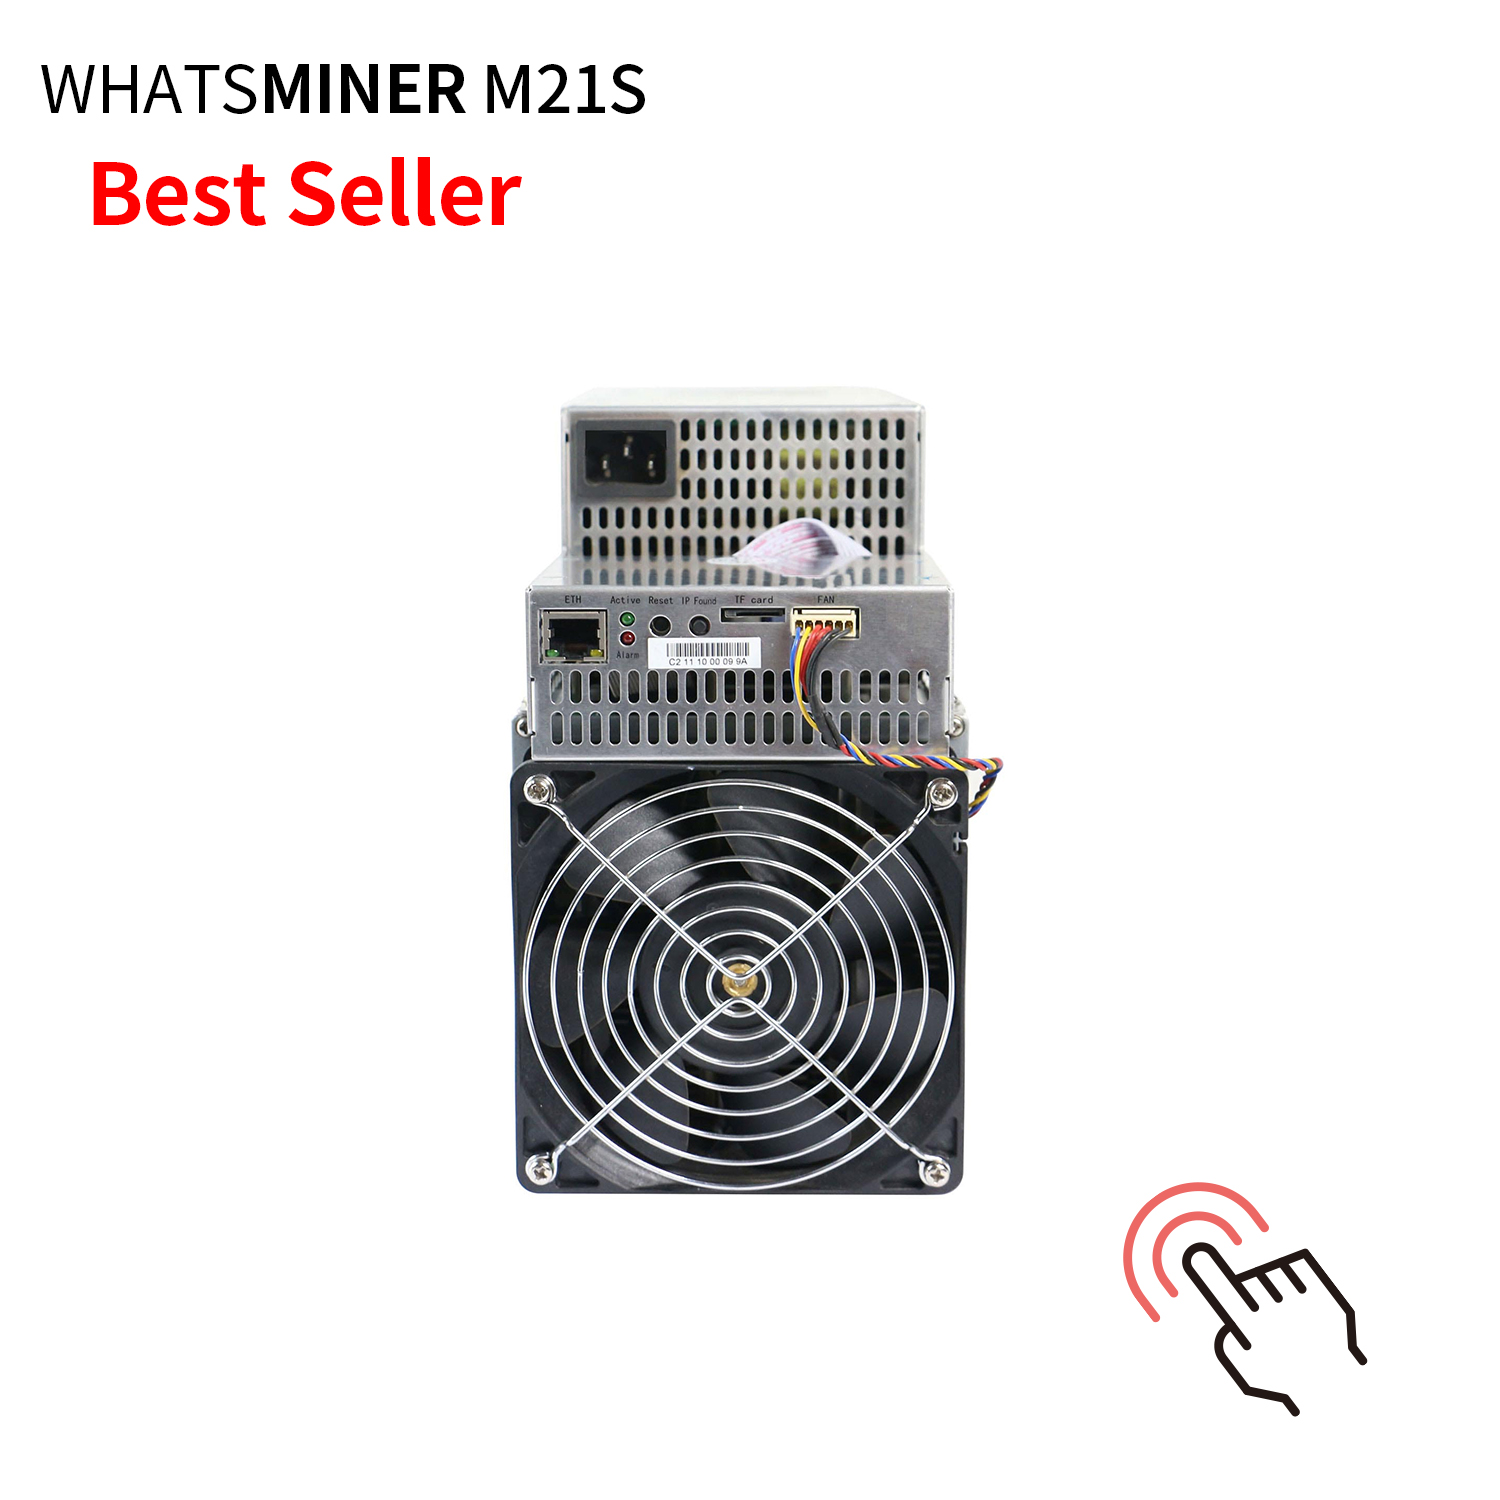 Cheapest Whatsminer M21S 56Th/s 3360W SHA256  ASIC Bitcoin Miner with power for pool miners